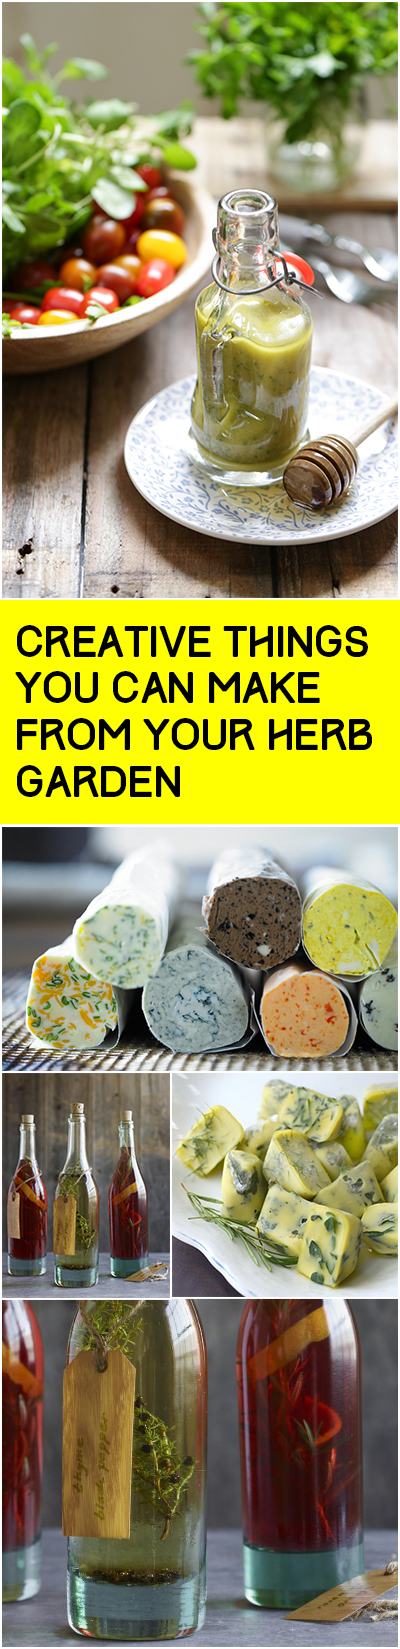 Gardening, home garden, garden hacks, garden tips and tricks, growing plants, gardening DIYs, gardening crafts, popular pin, herb garden, DIY herb garden